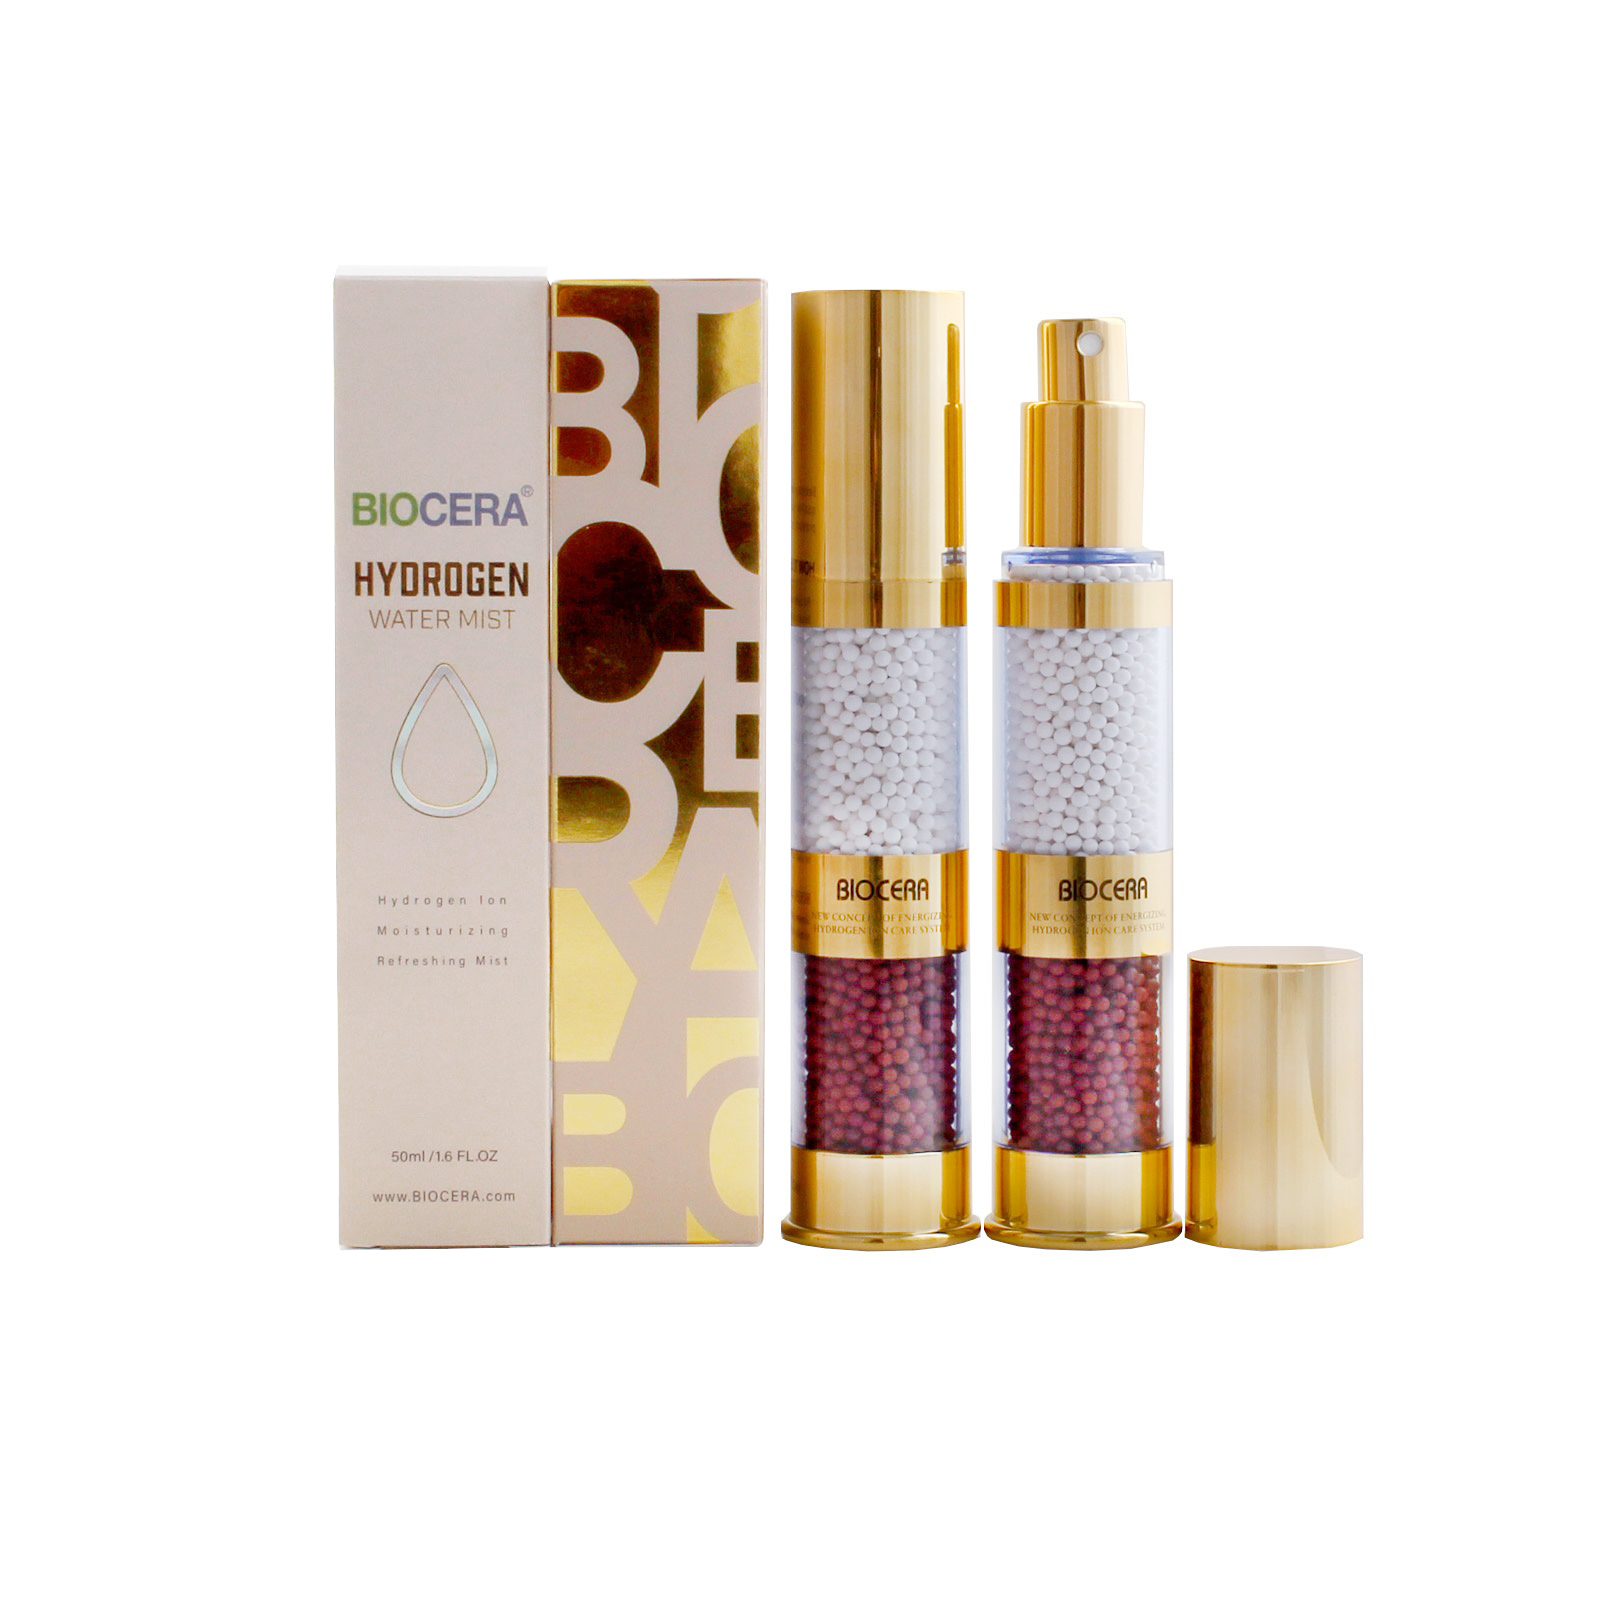 The Biocera Hydrogen Water Mist…A Natural Way To Moisturise